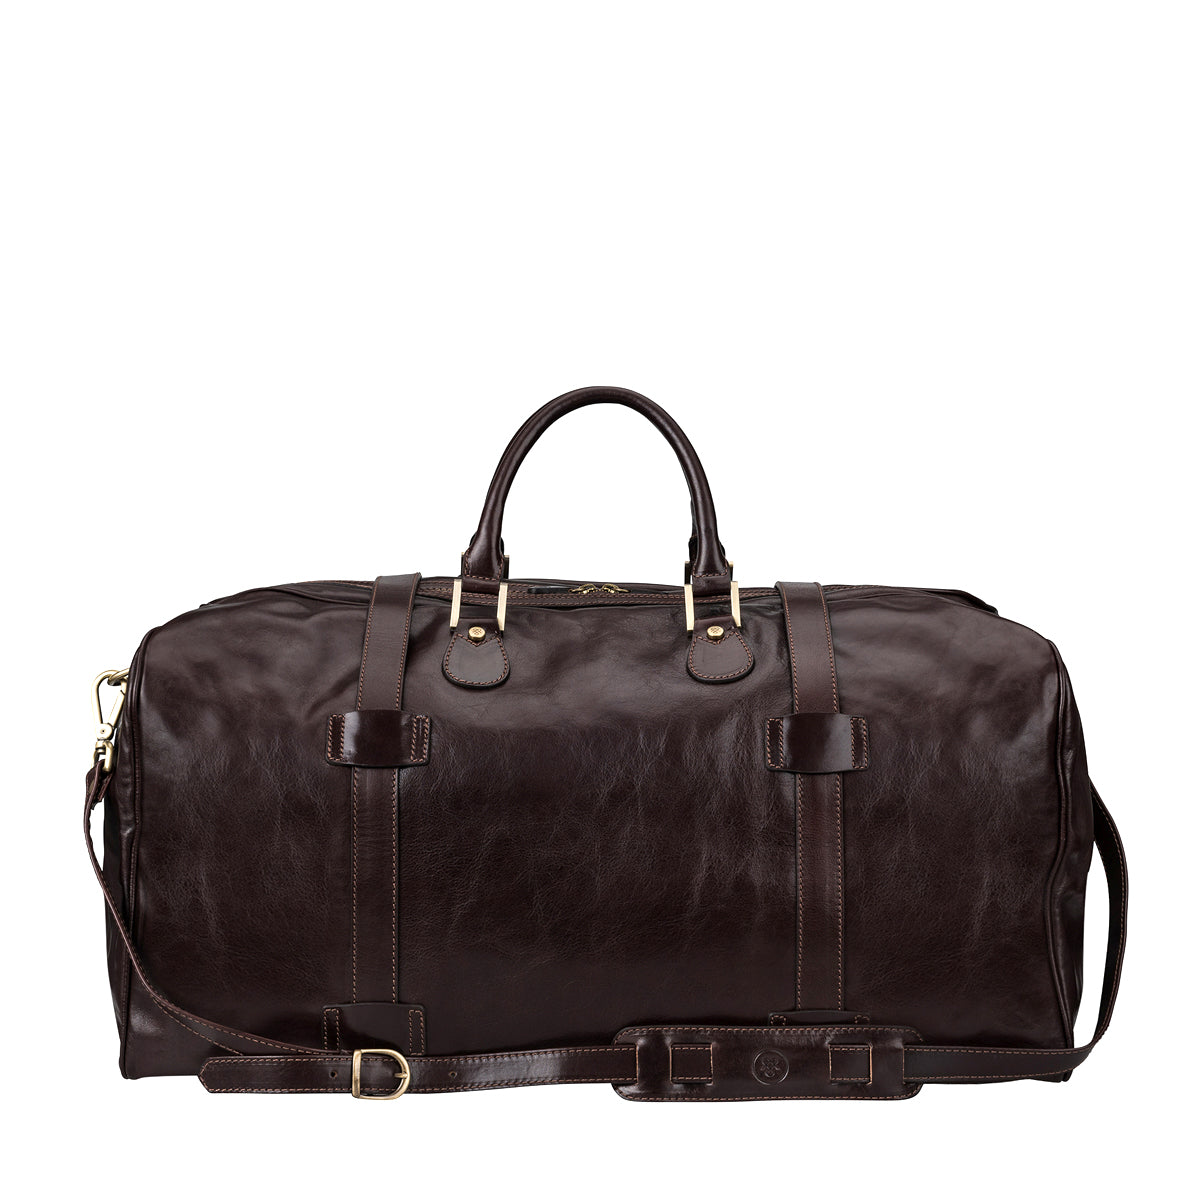 Image 4 of the Extra Large 'Flero' Dark Chocolate Veg-Tanned Leather Holdall